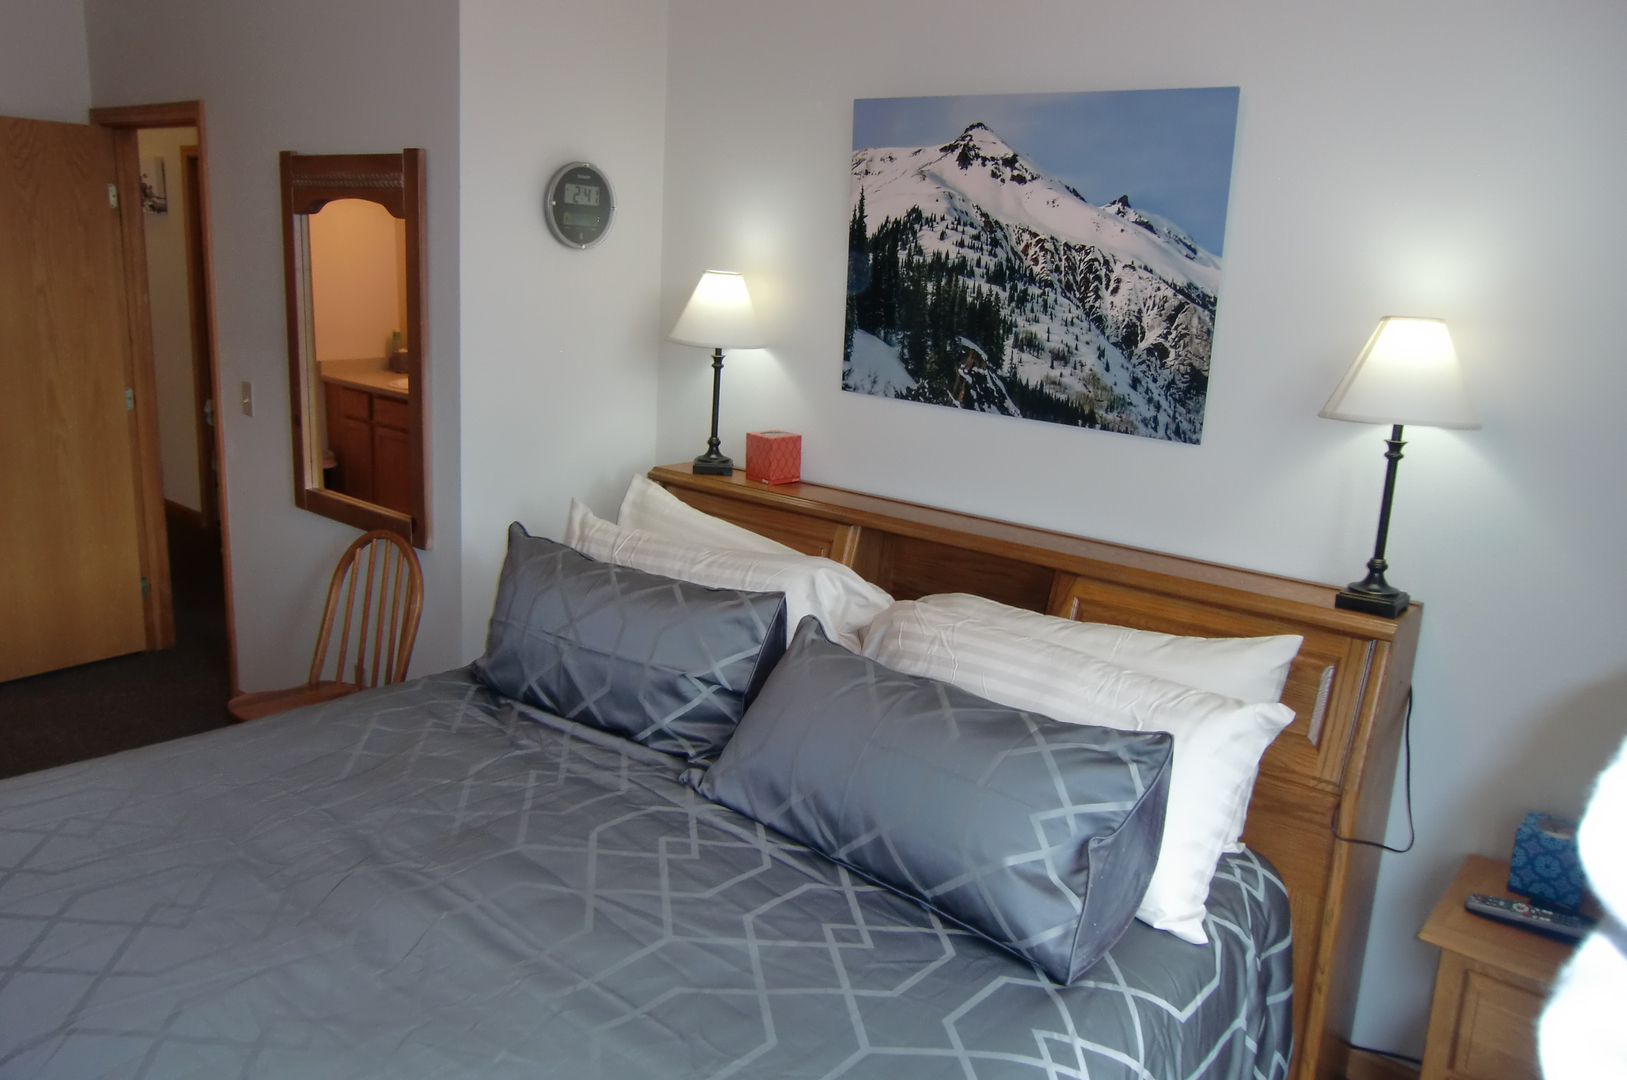 Mein Haus - Bed And Breakfast, Hotel, Hotel Discounts